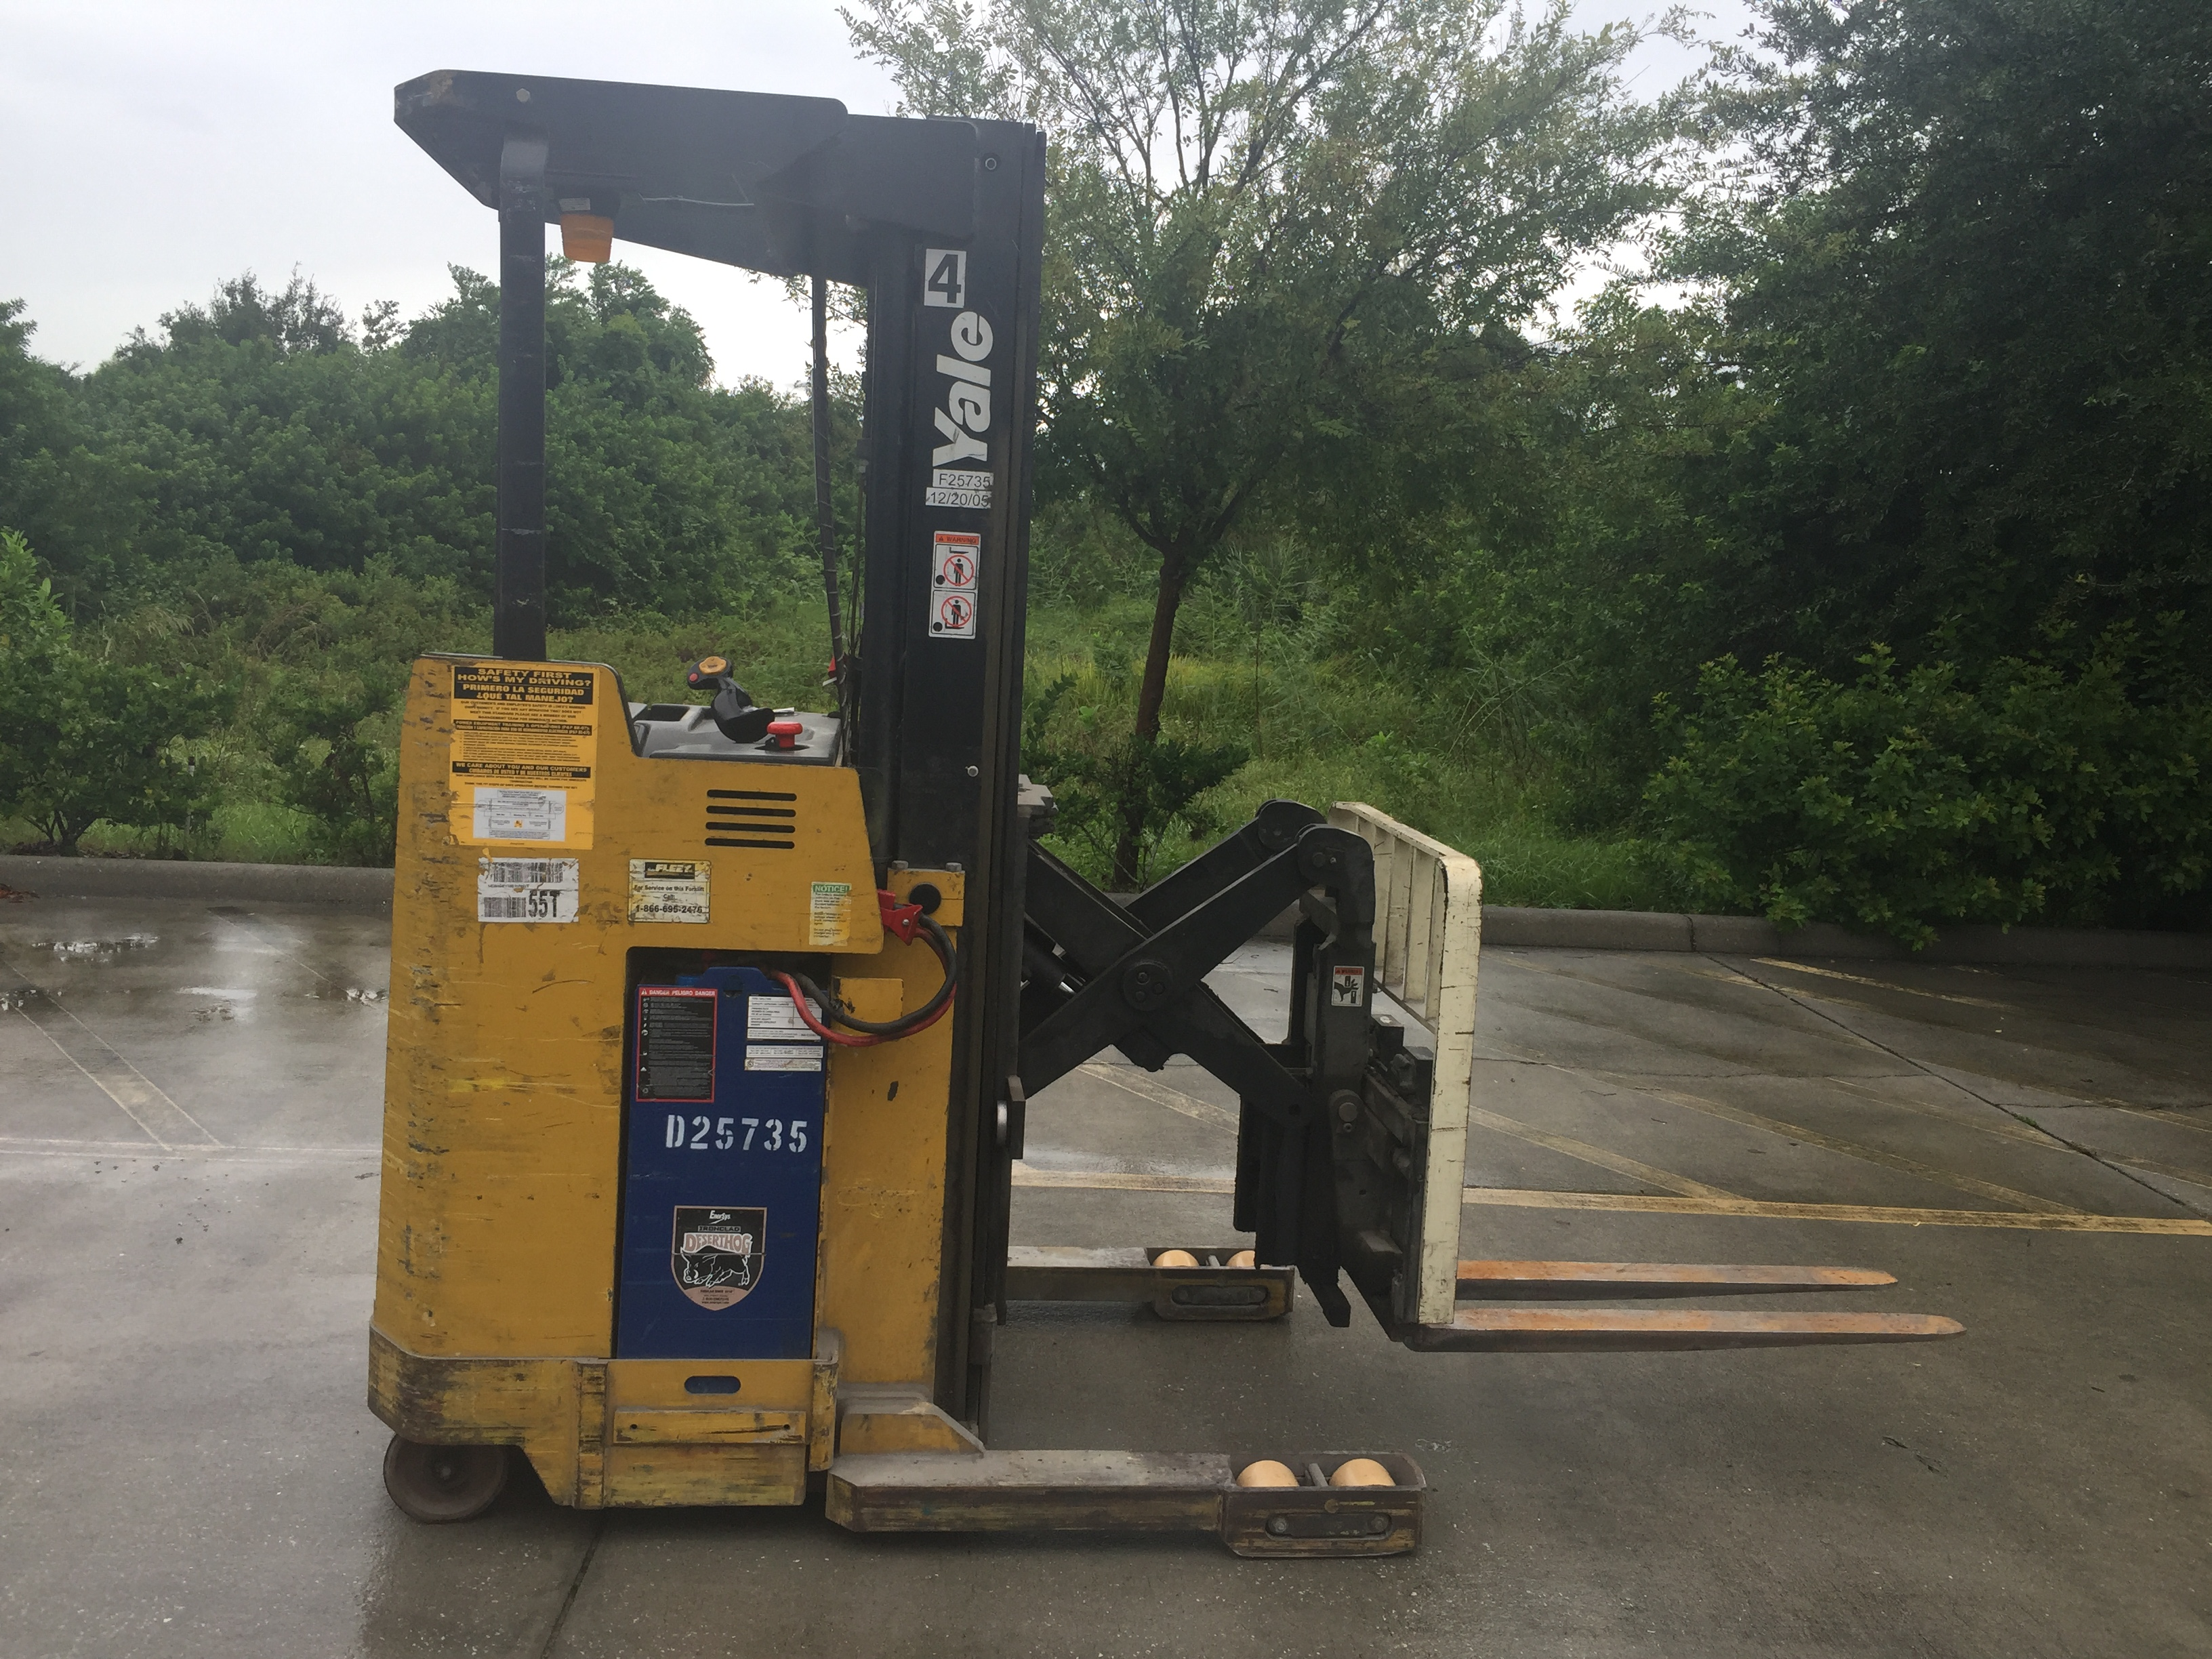 2006 YALE NR040AENS24TE091 FORKLIFT FOR SALE